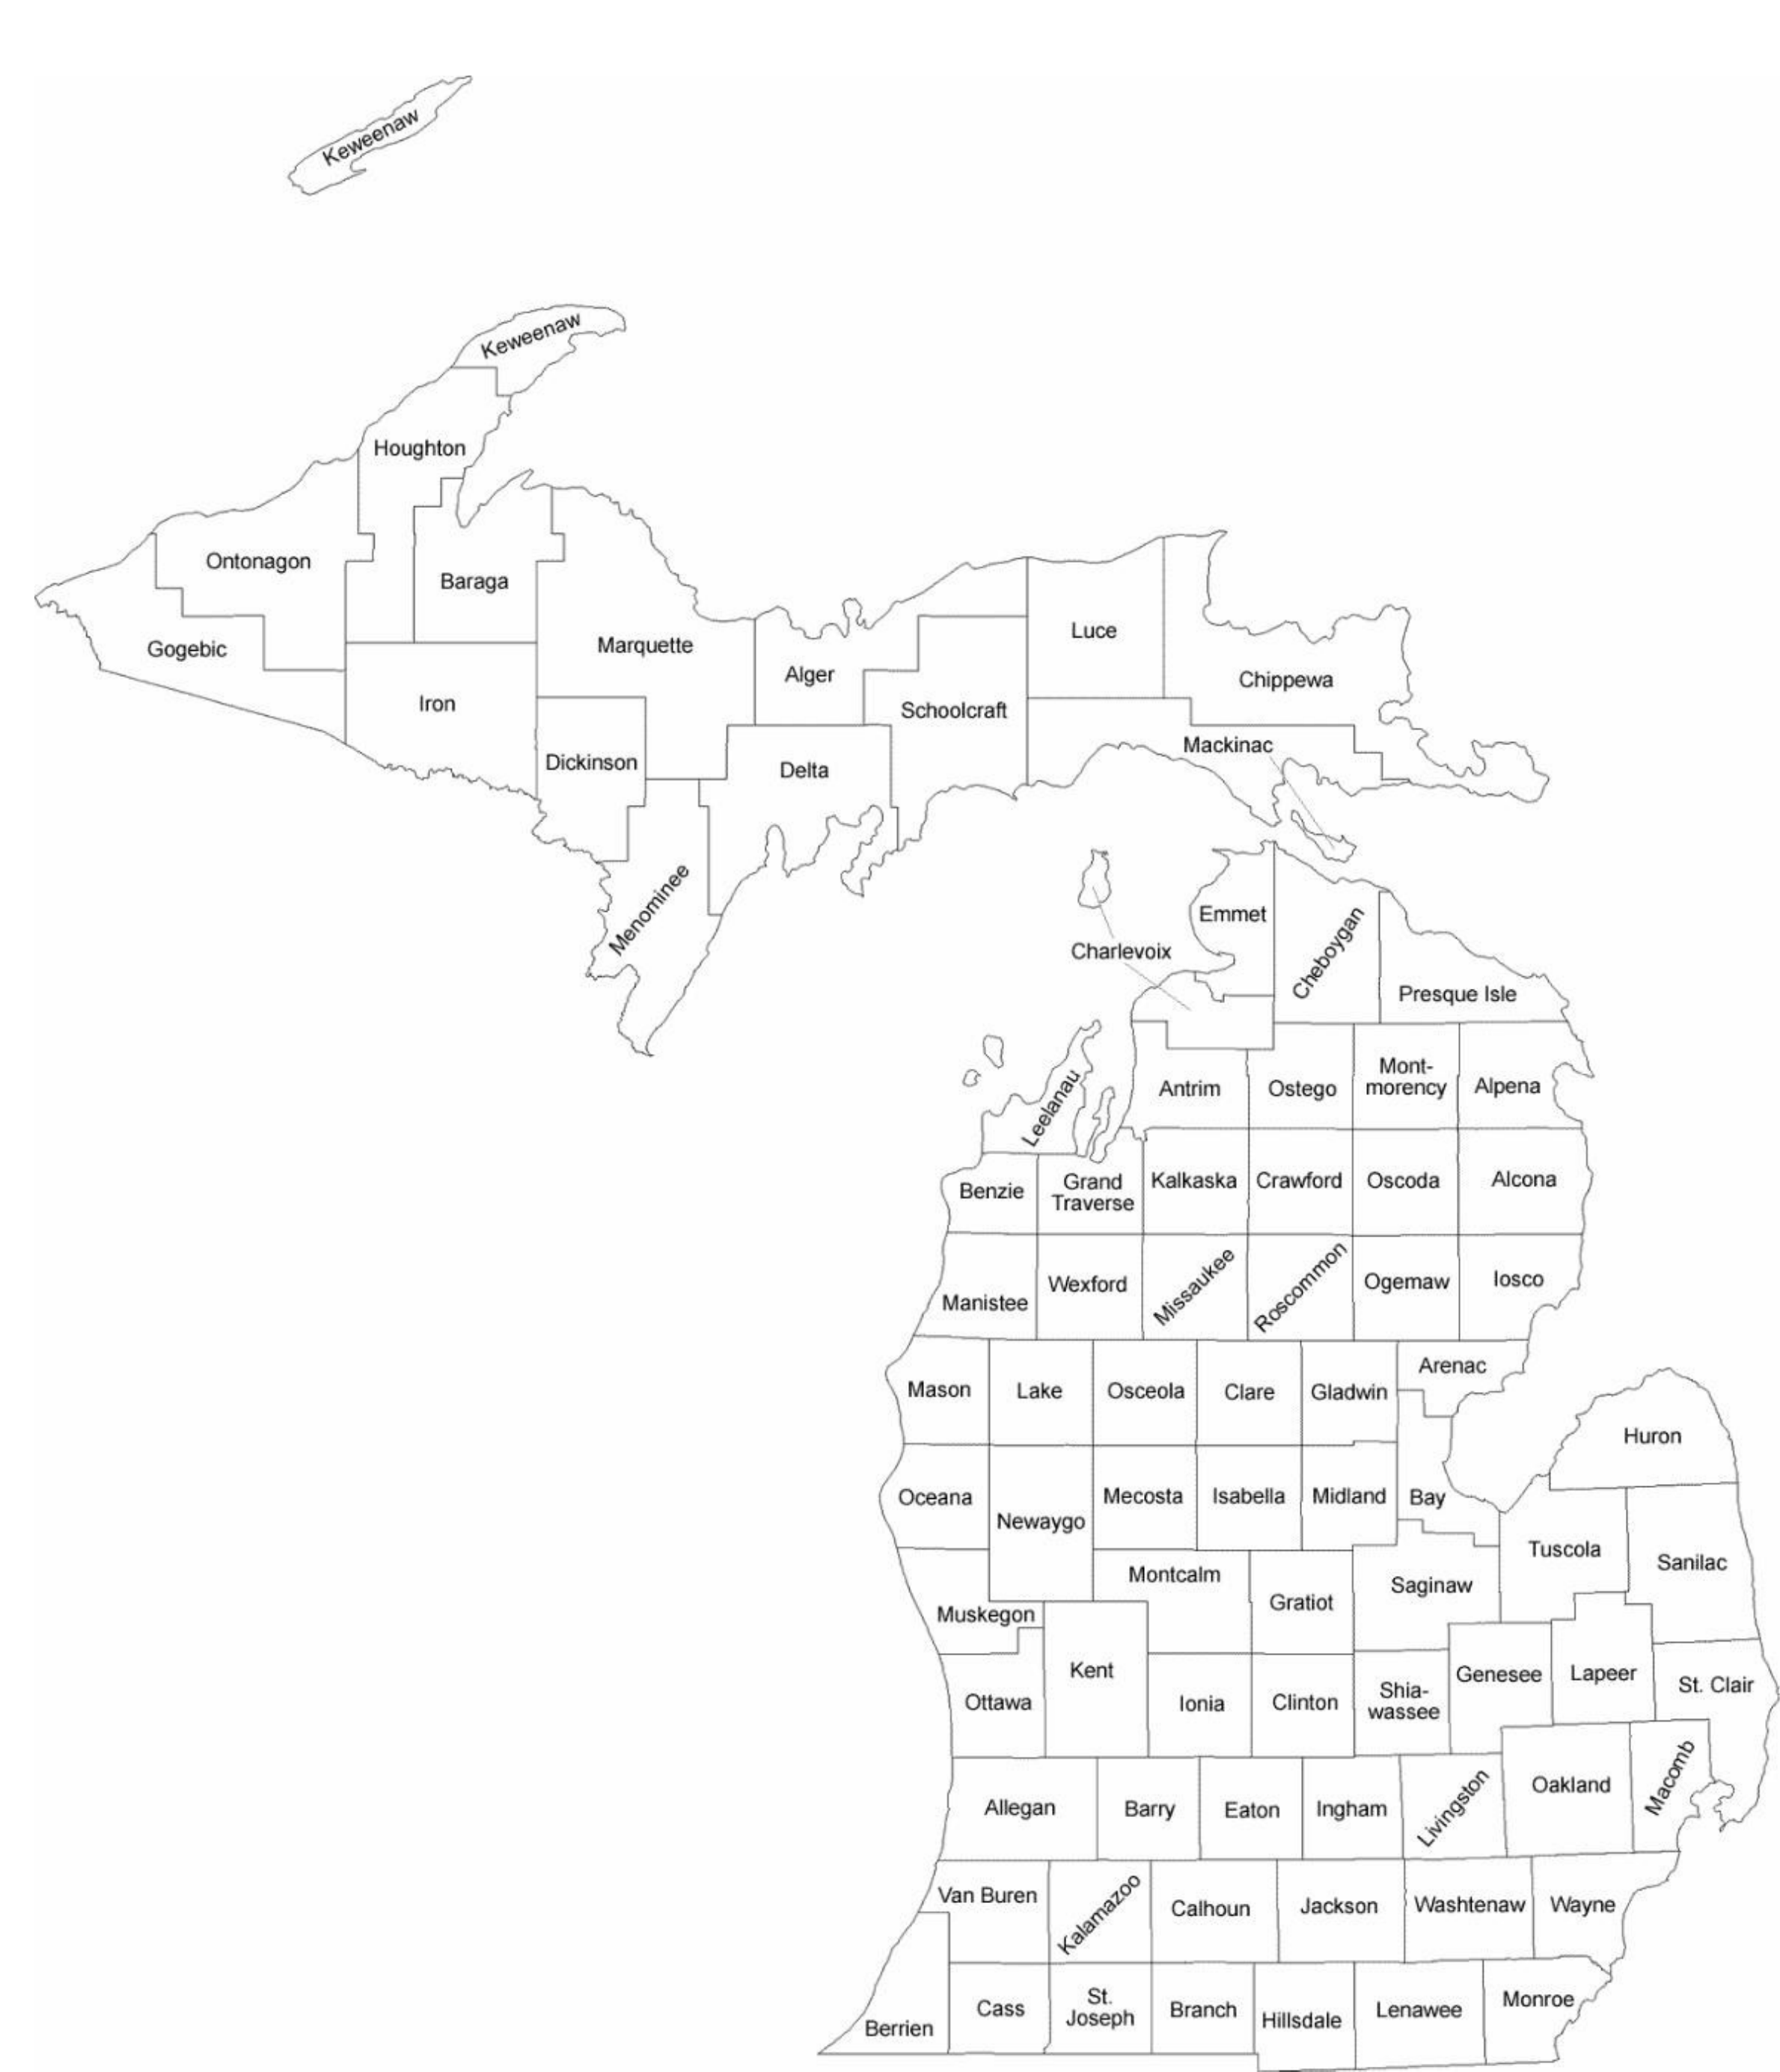 Michigan County Map with County Names Free Download